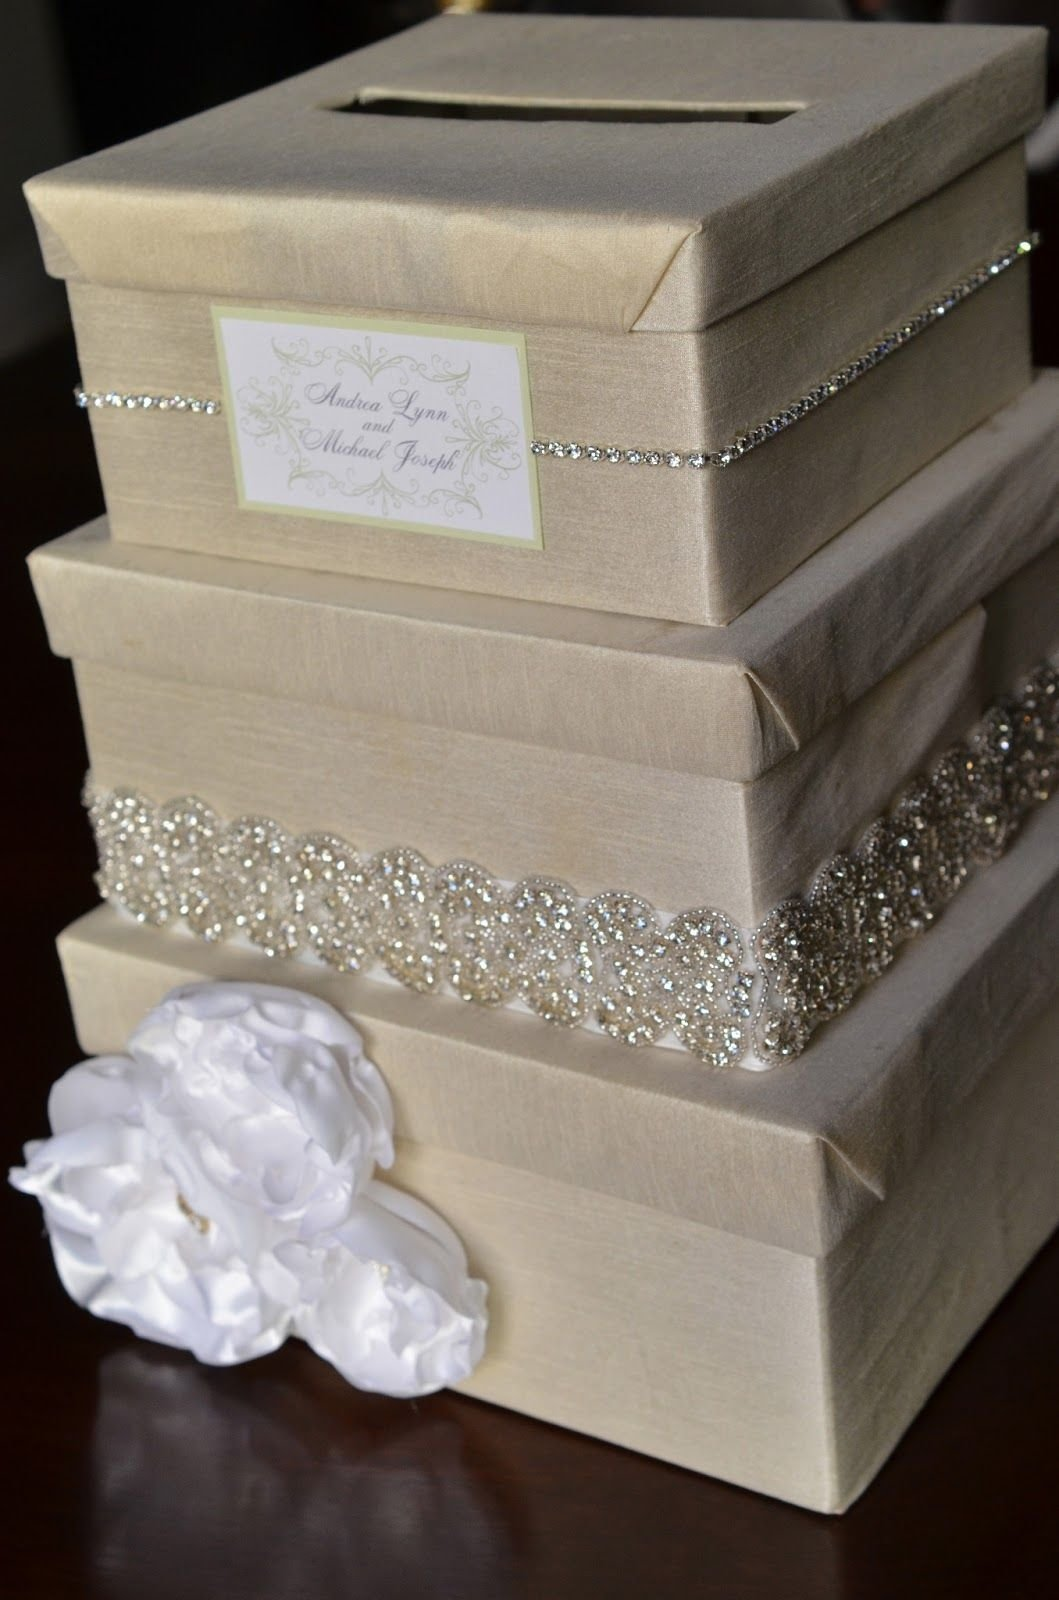 10 Unique Diy Wedding Card Box Ideas diy wedding card box i would do ivory and coral but think its a